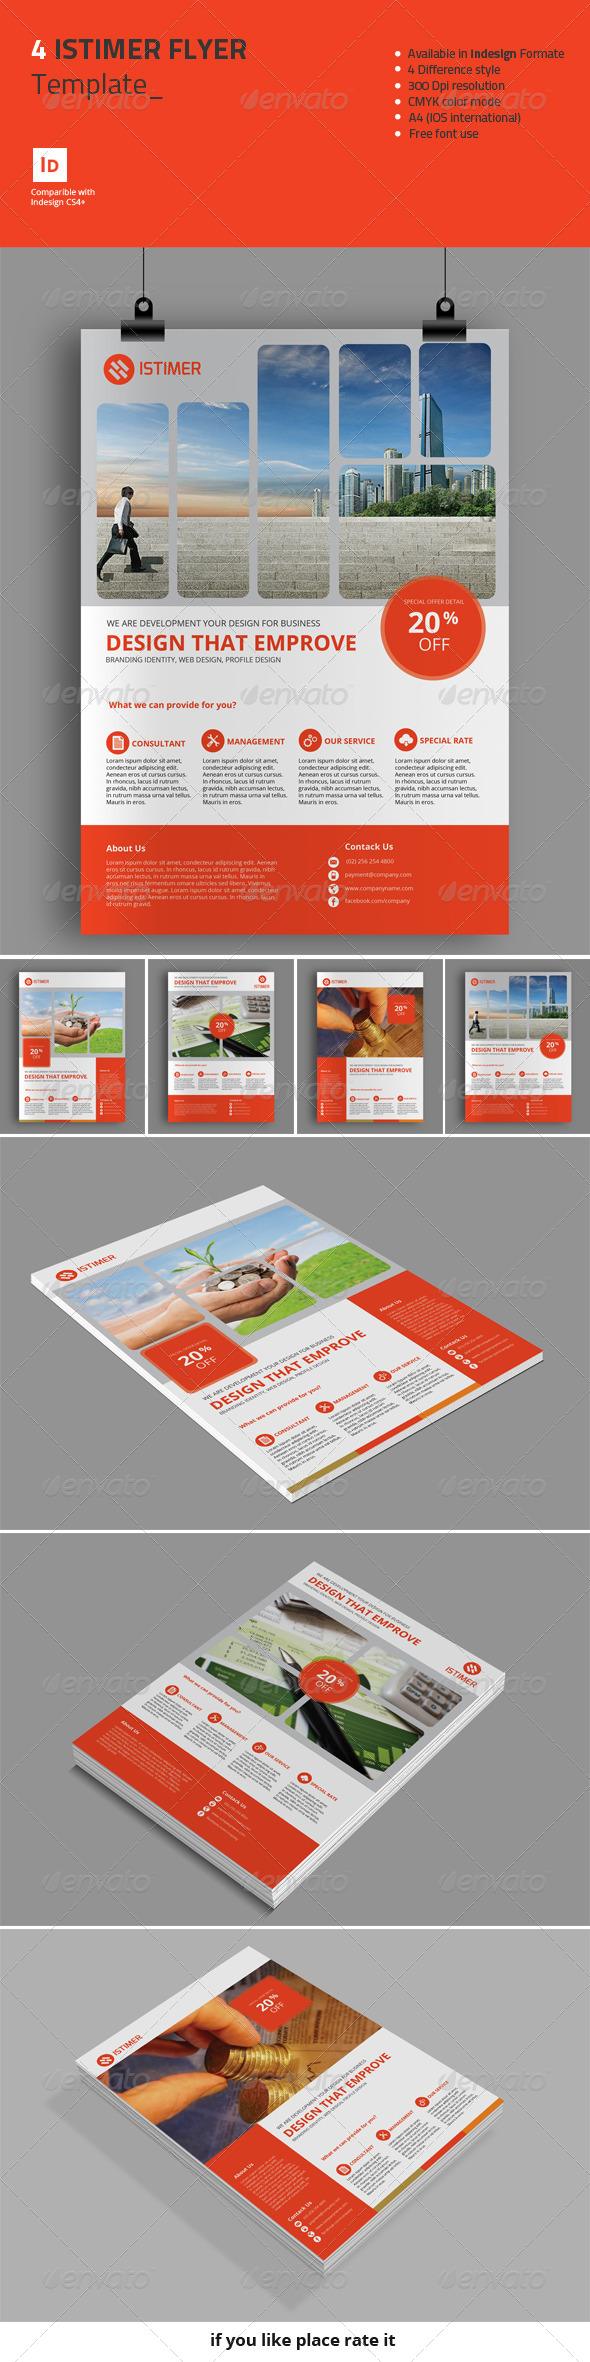 GraphicRiver 4 Istimer Flyer Template 8427210